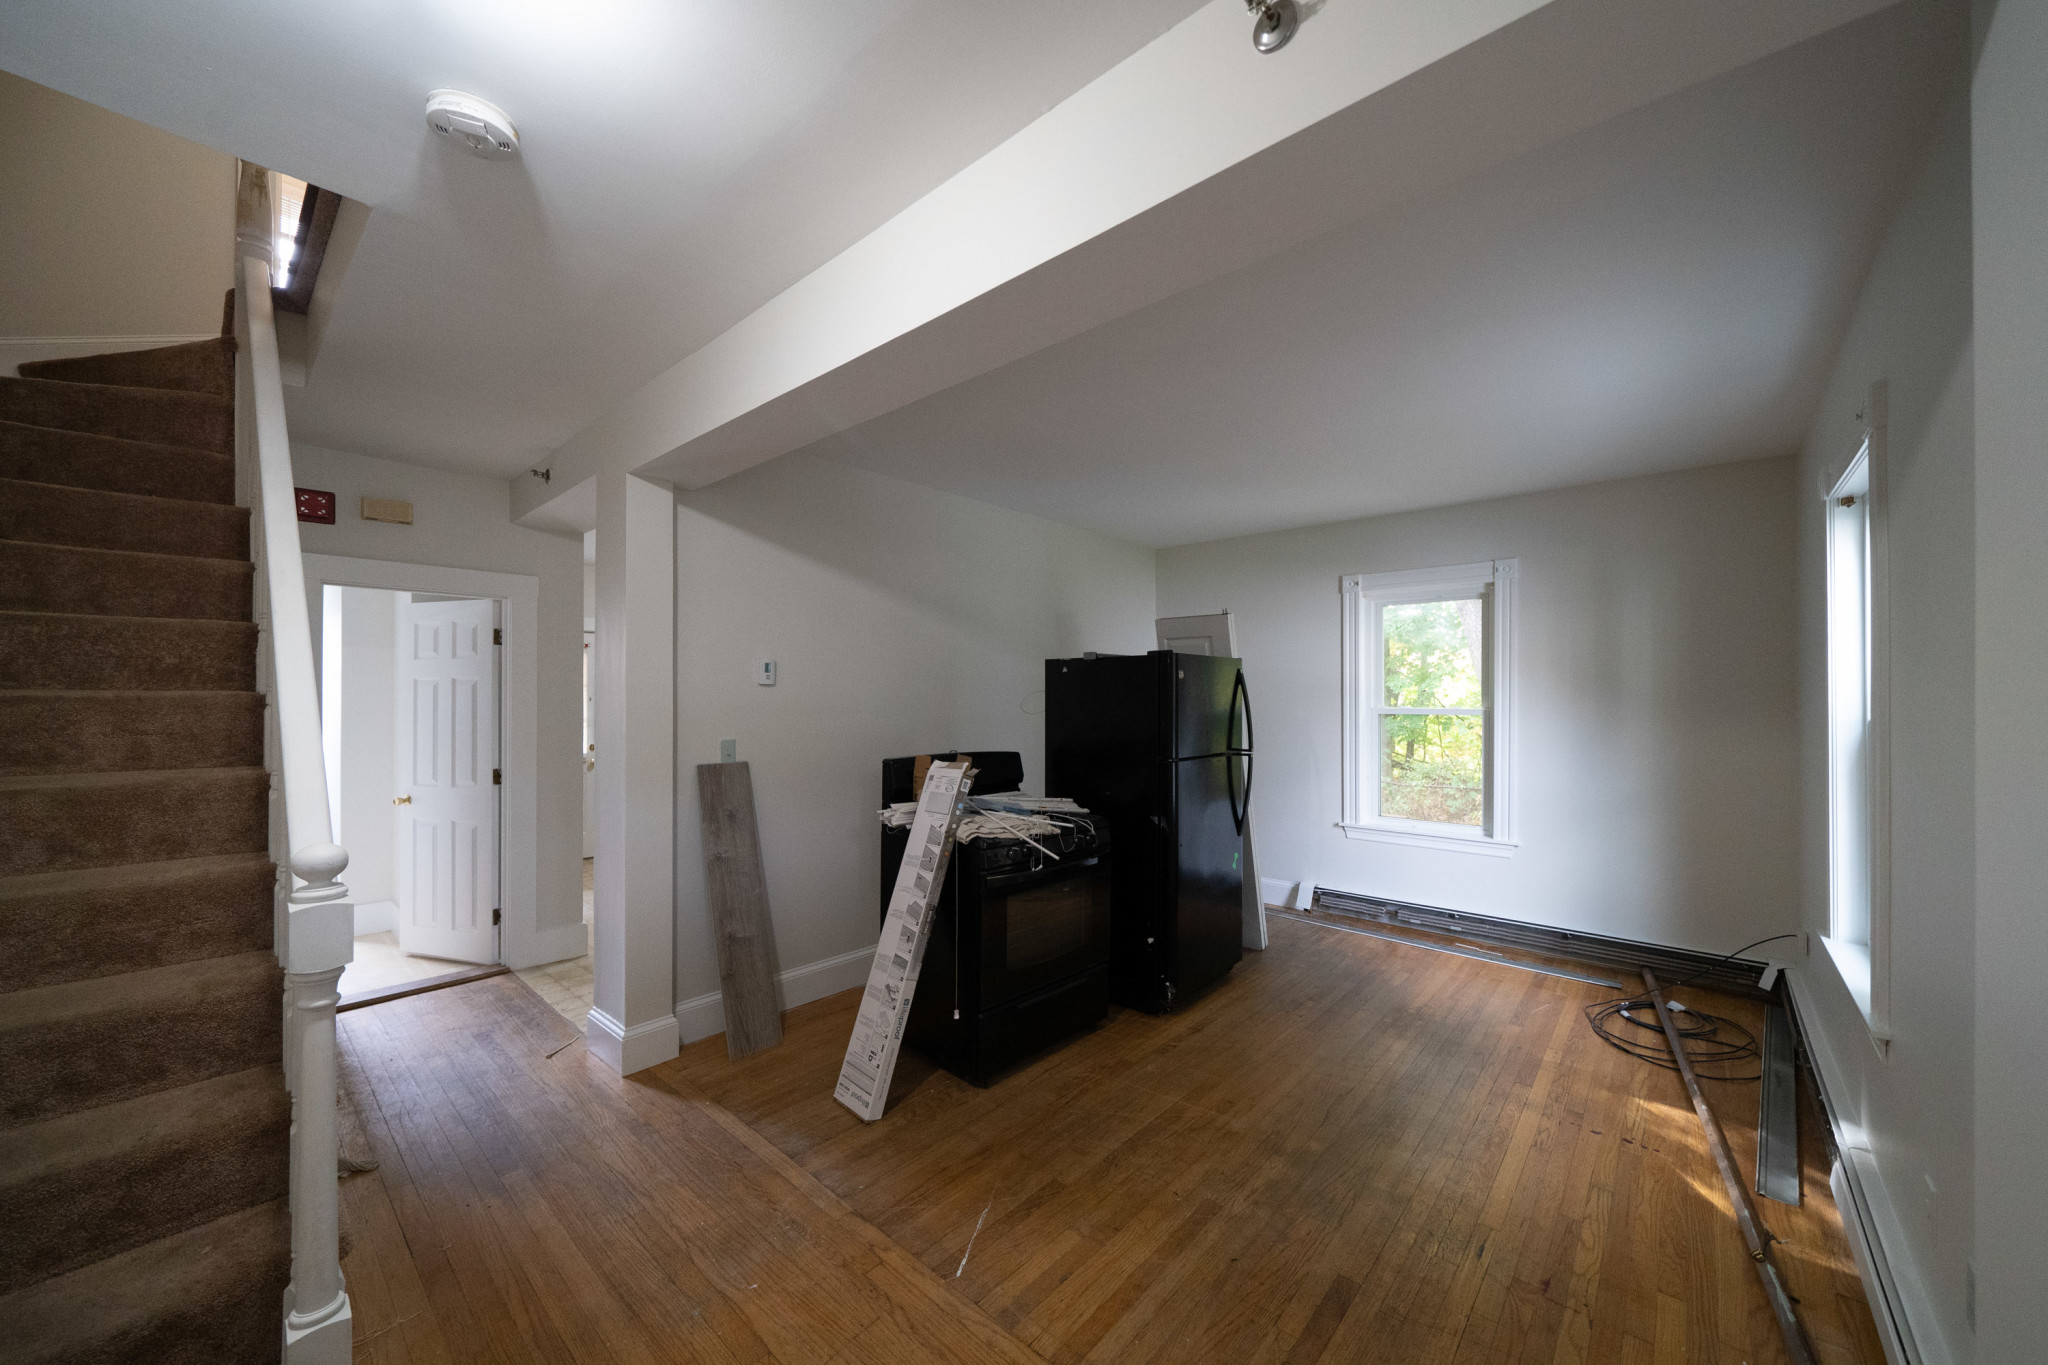 3 Beds, 1.5 Baths apartment in Waltham for $2,600